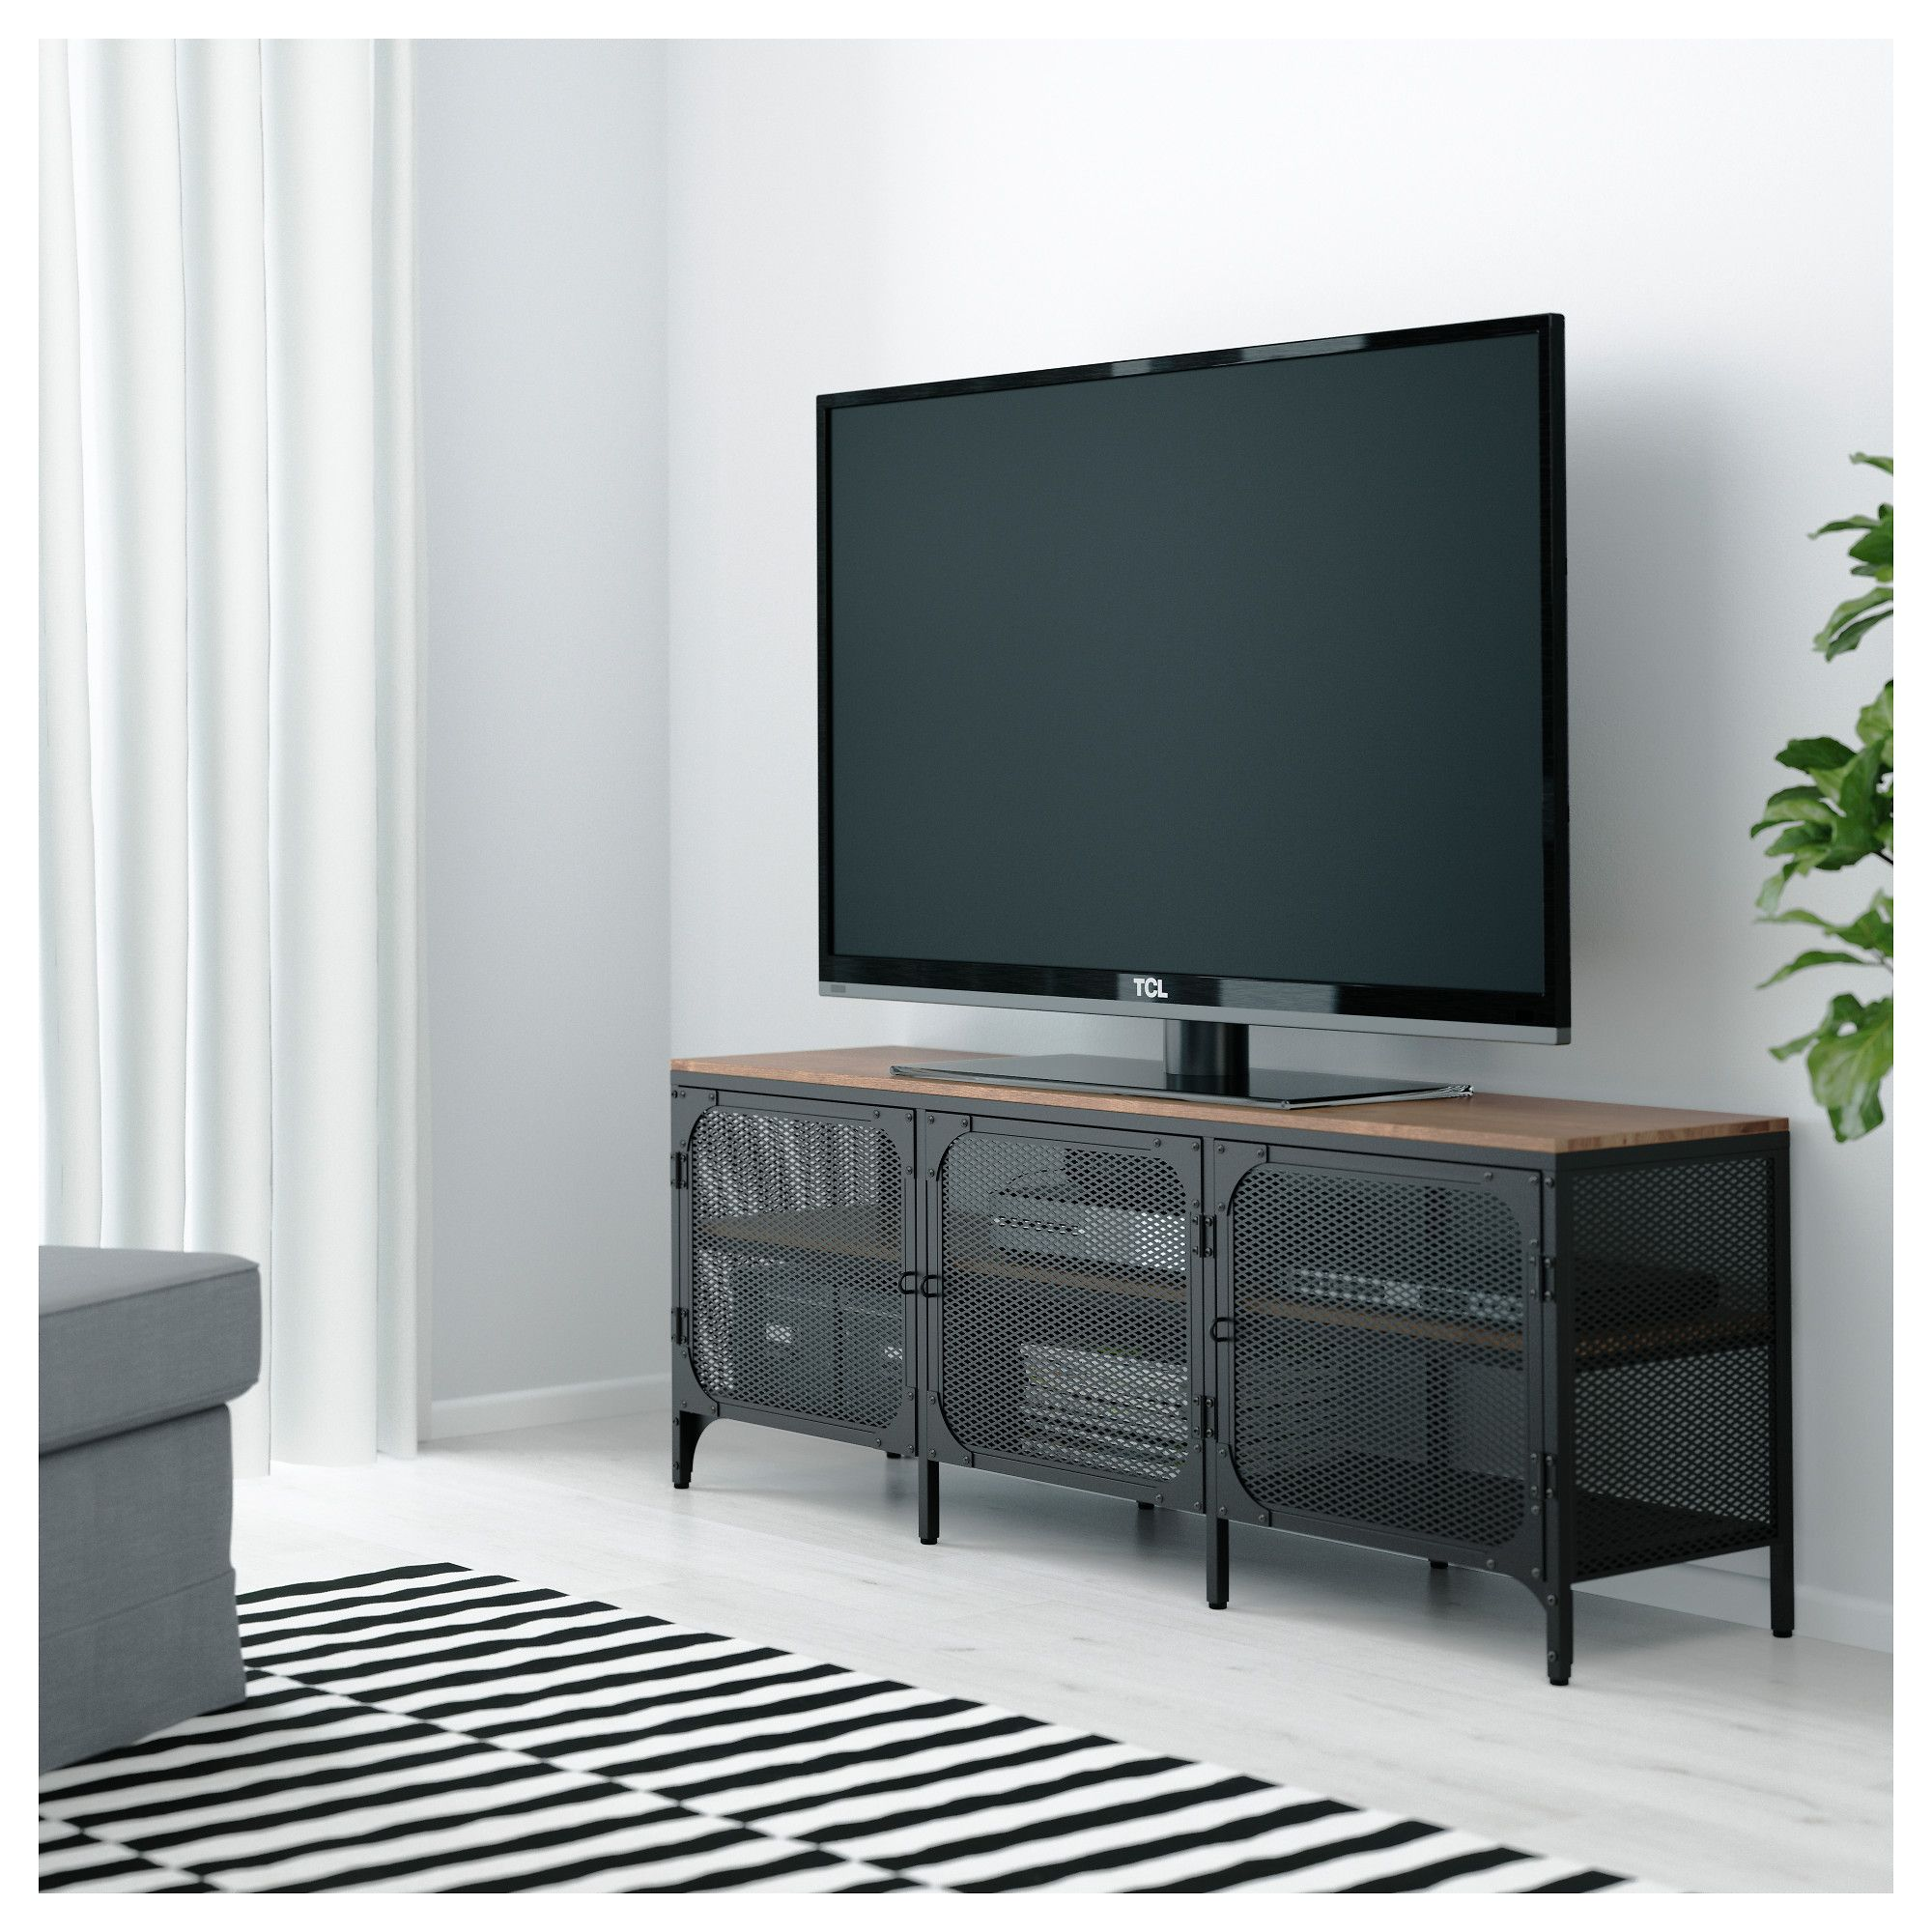 fj llbo tv bench black home decor pinterest meuble t l meuble tv et meuble. Black Bedroom Furniture Sets. Home Design Ideas